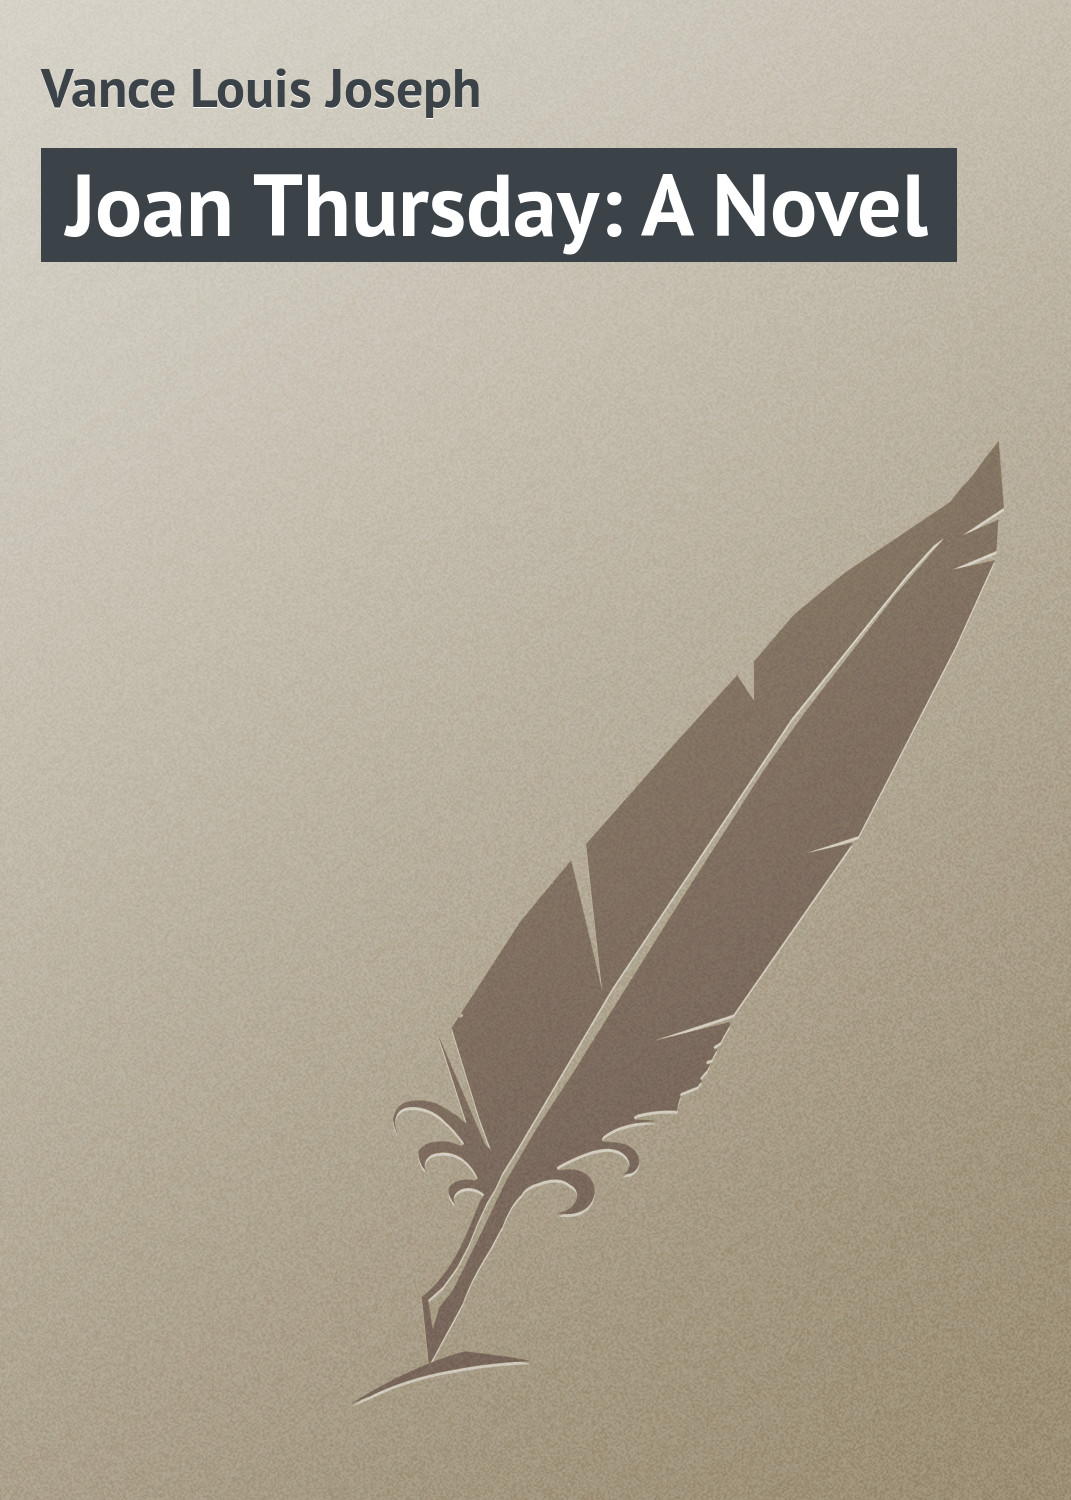 Vance Louis Joseph Joan Thursday: A Novel